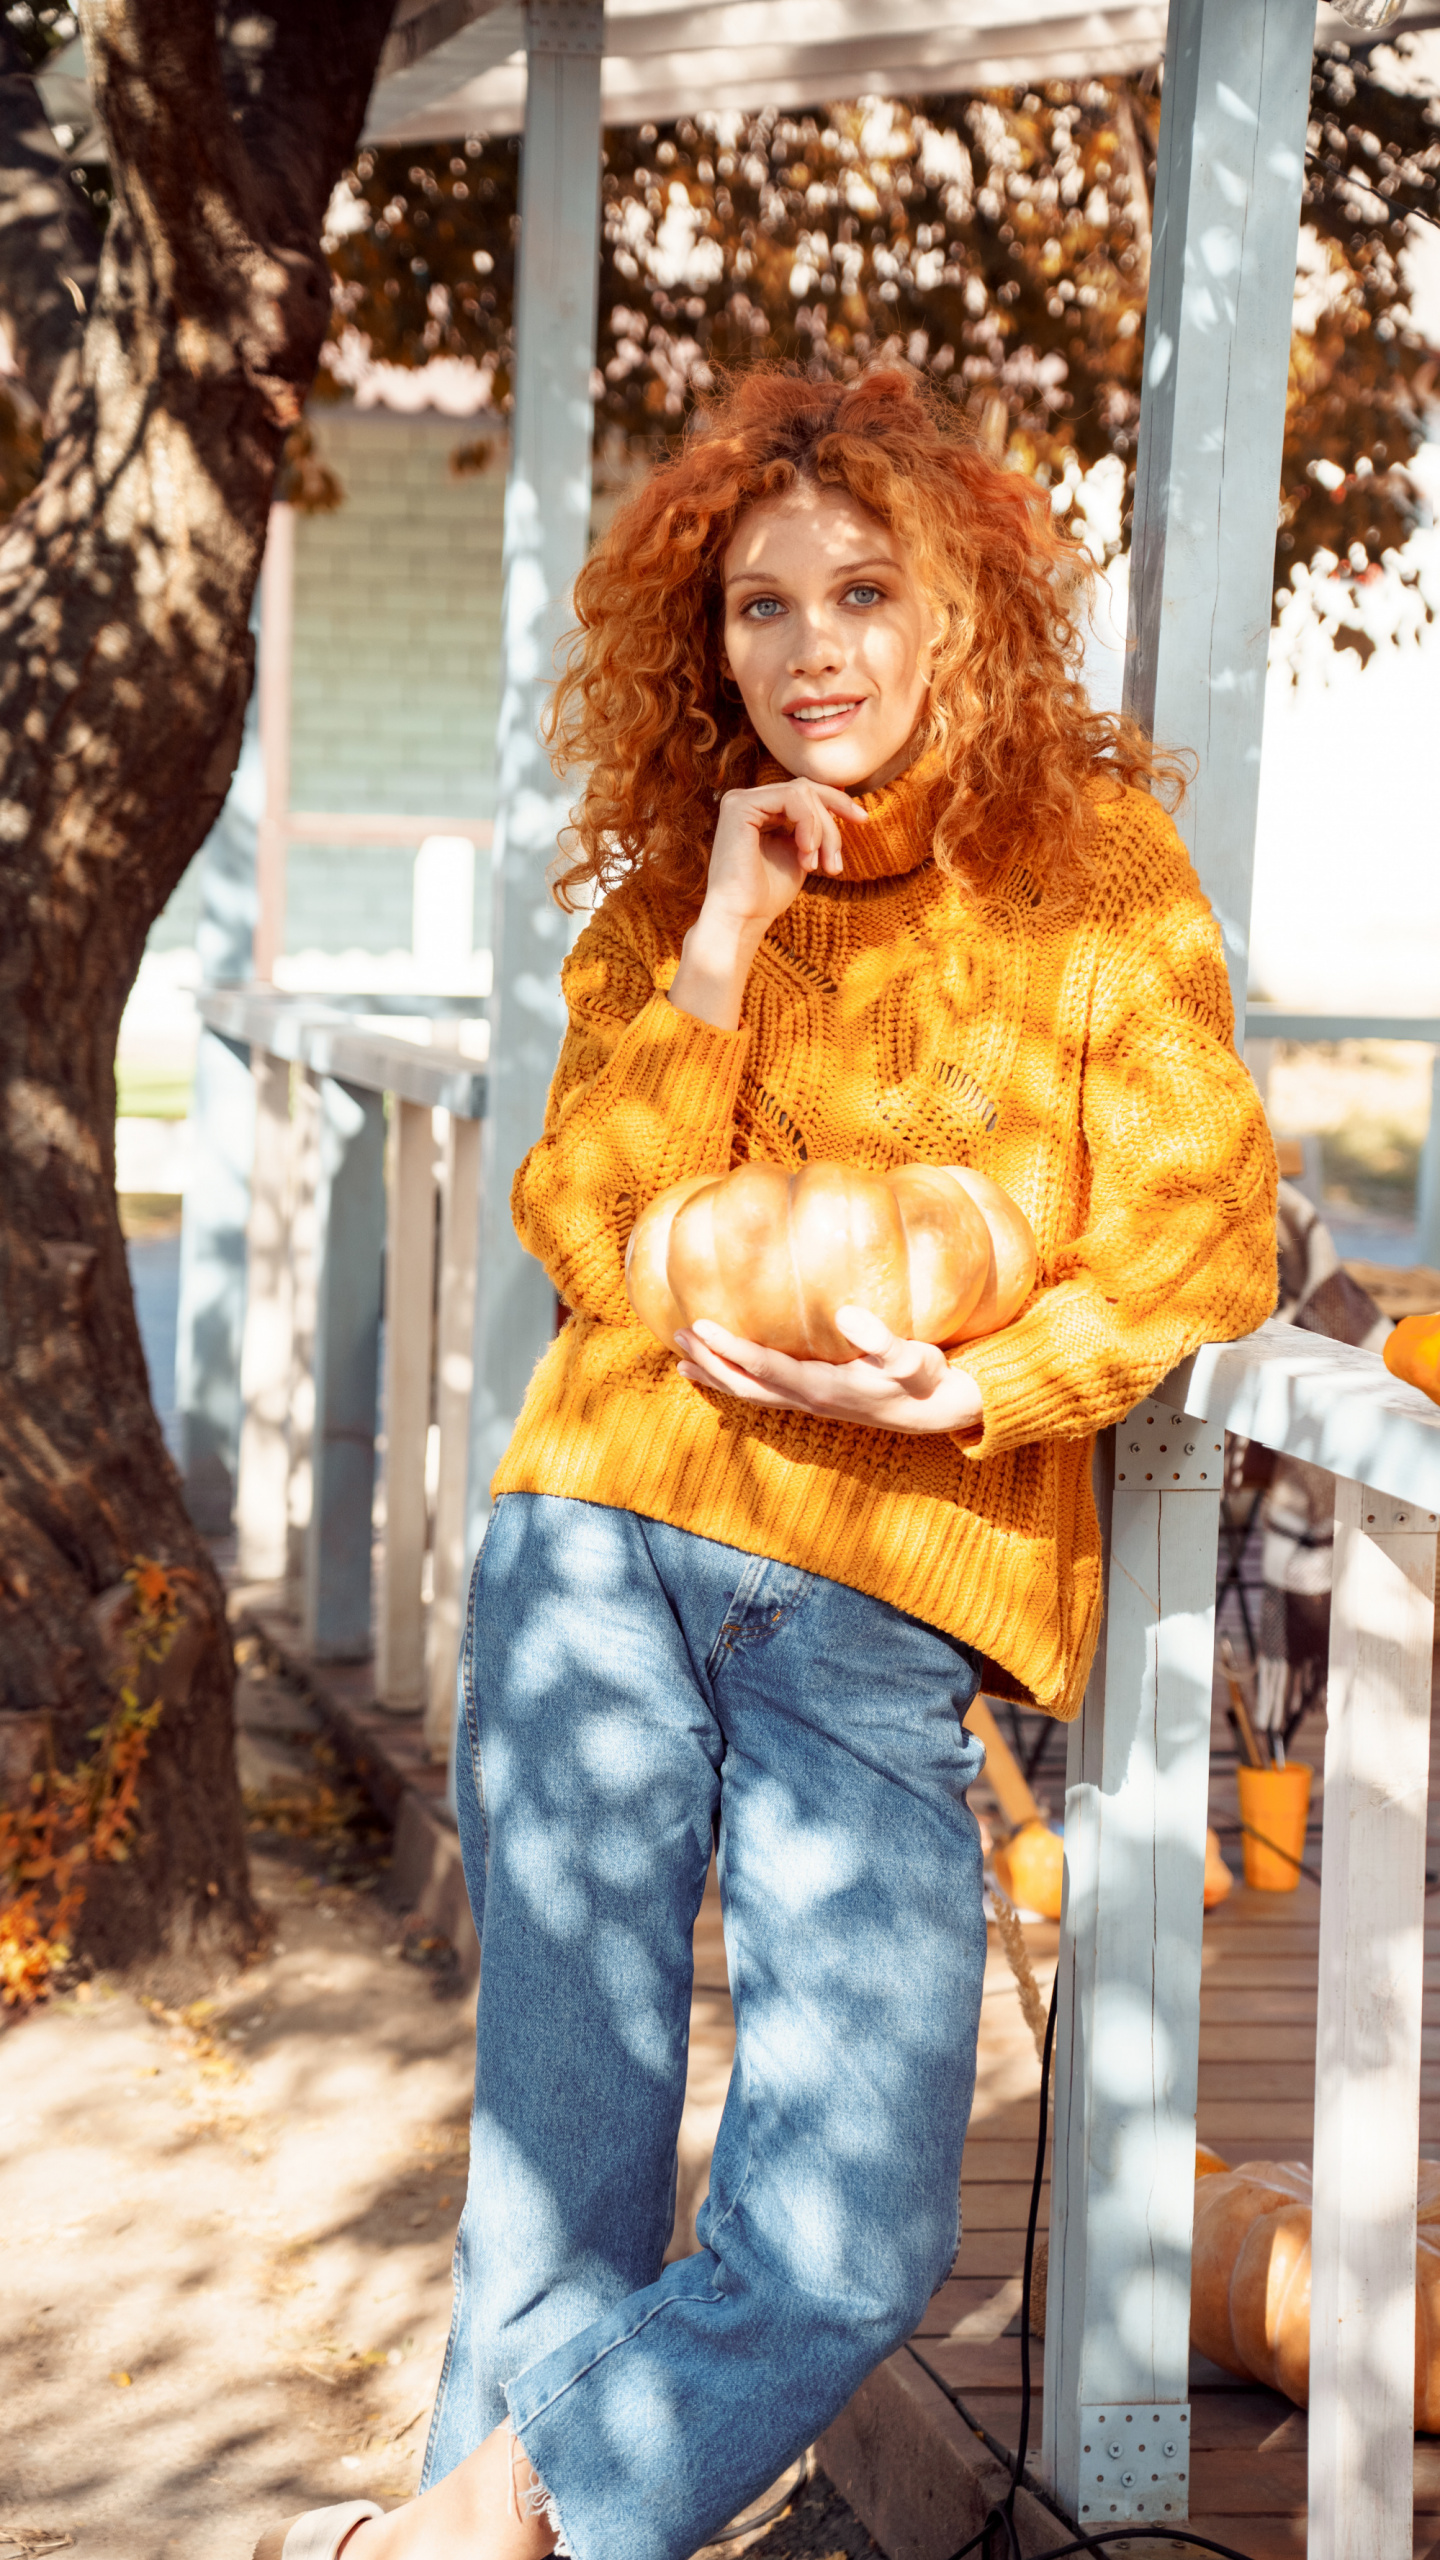 autumn self-care products, Red-haired woman in gold sweater and jeans holding pumpkin